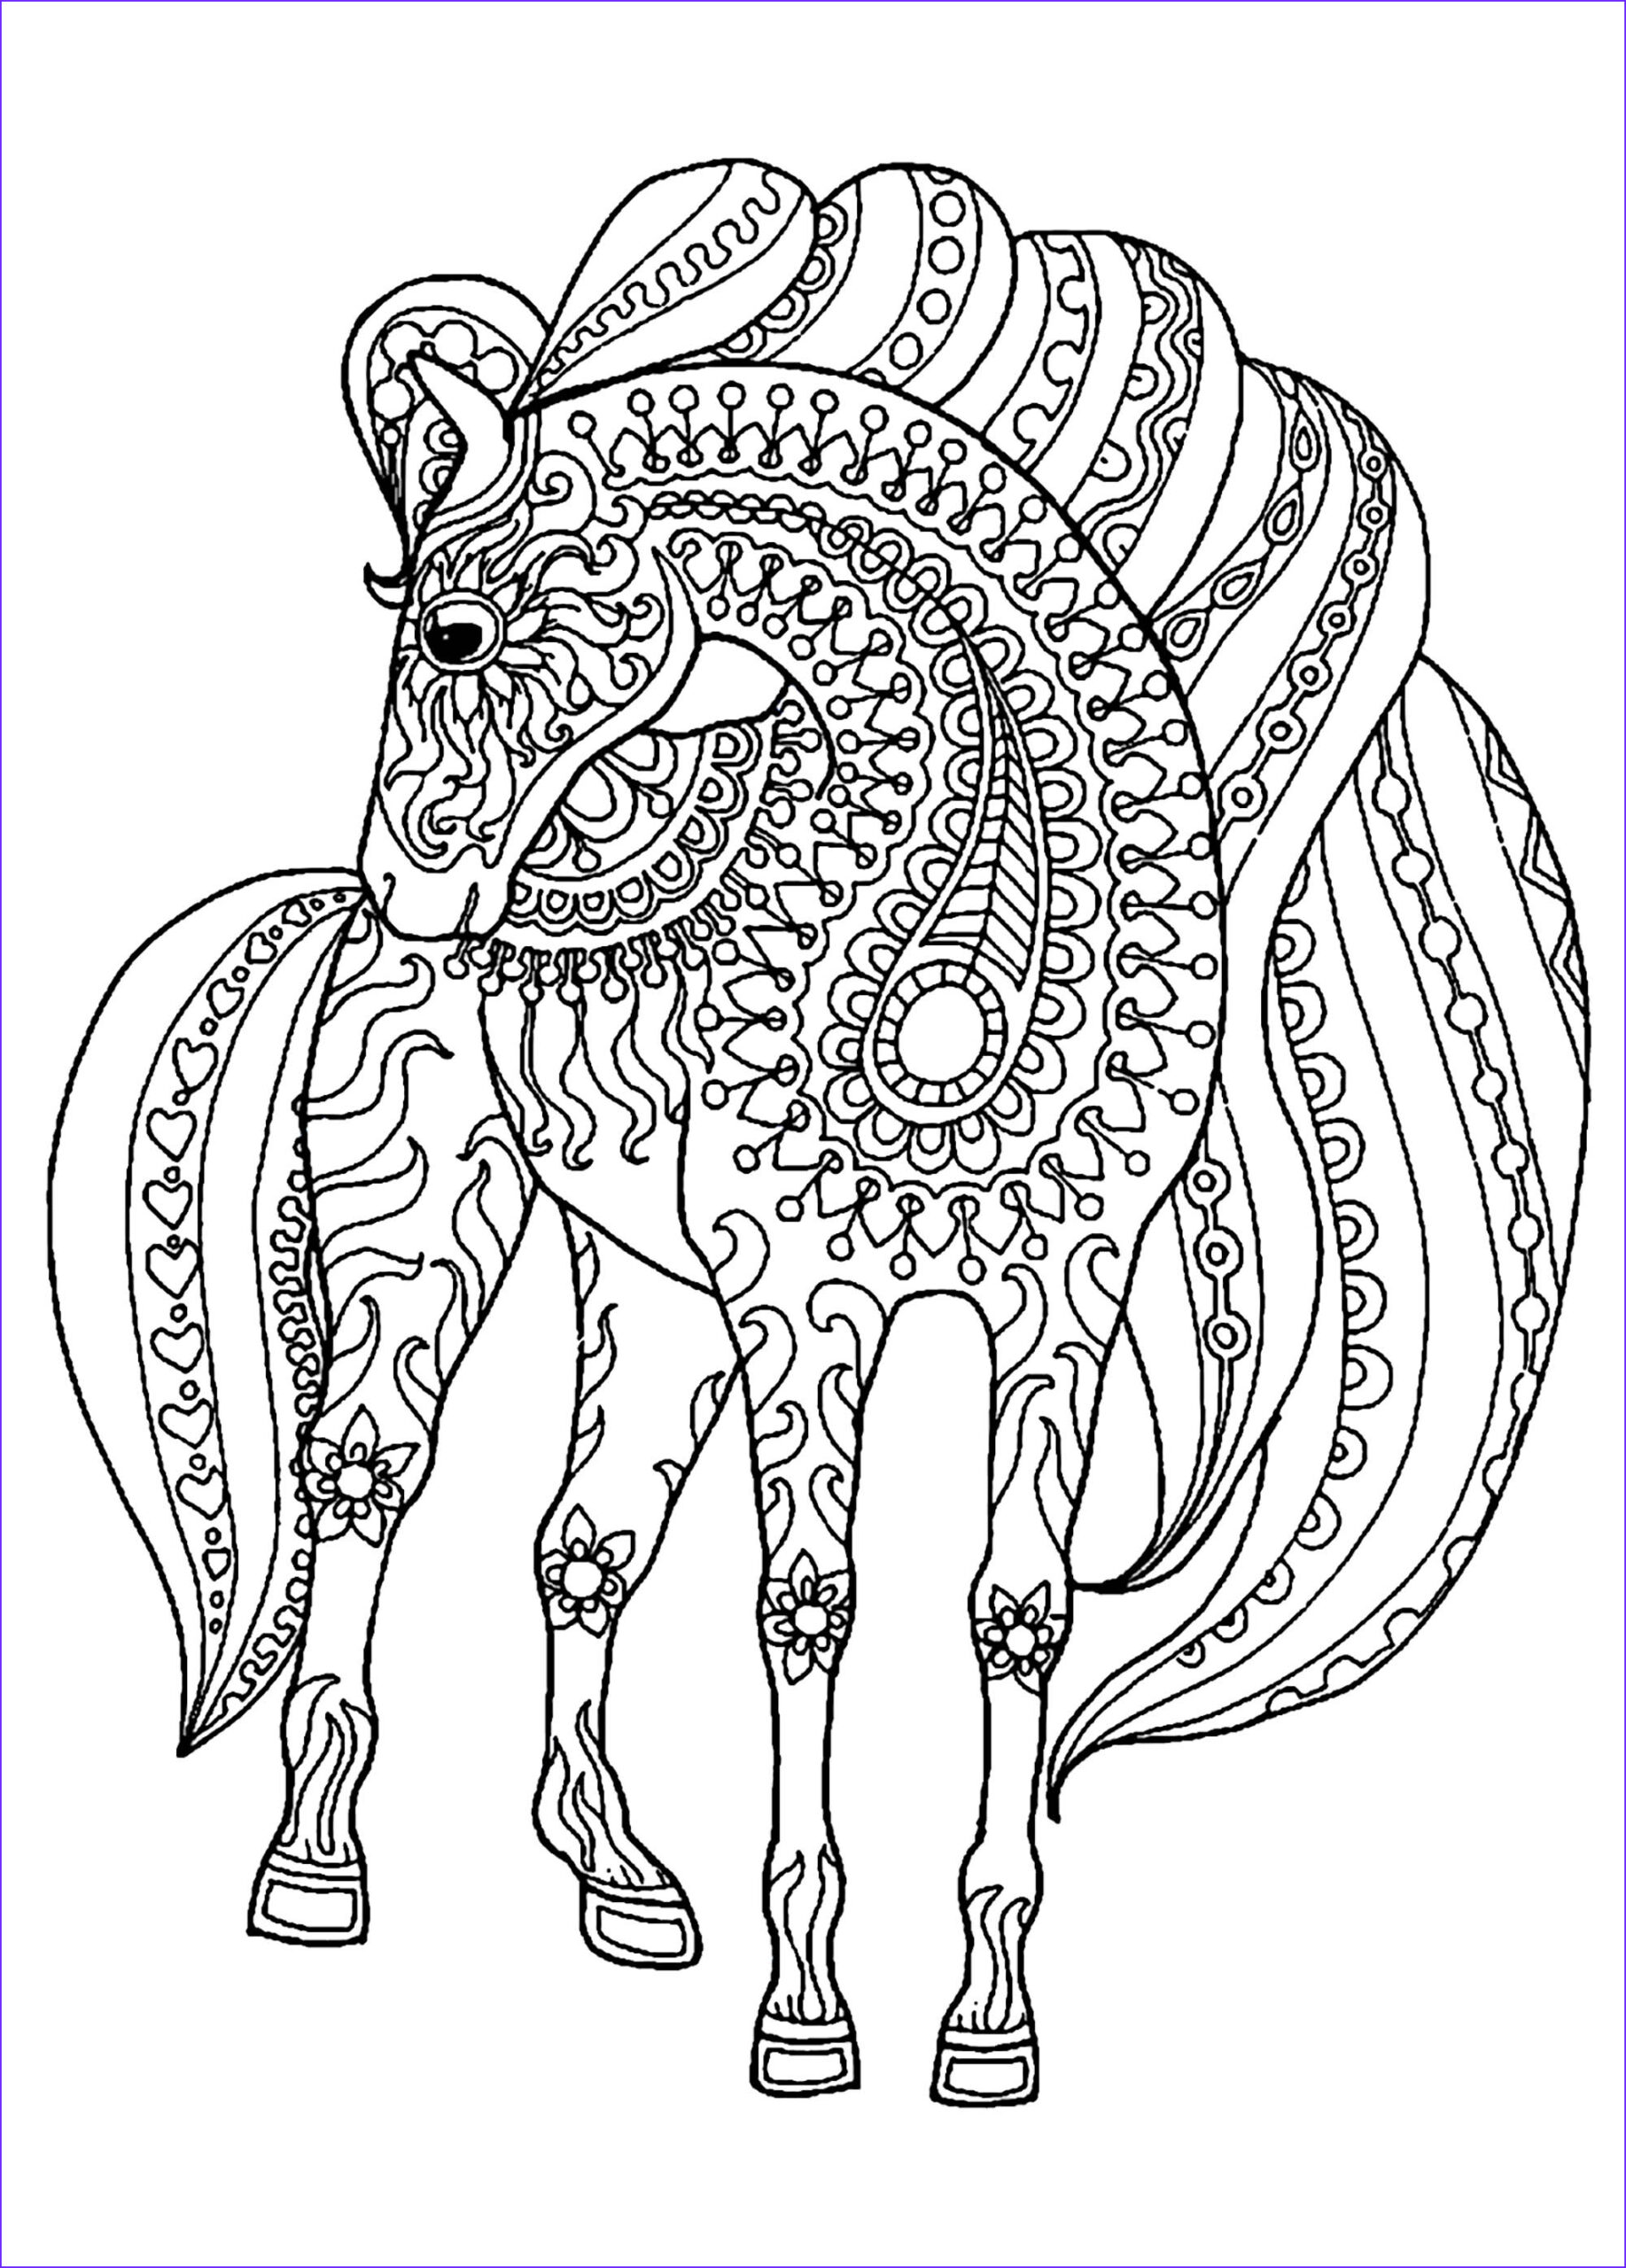 Horse Coloring Pages Elegant Photos Horse Simple Zentangle Patterns Horses Adult Coloring Pages